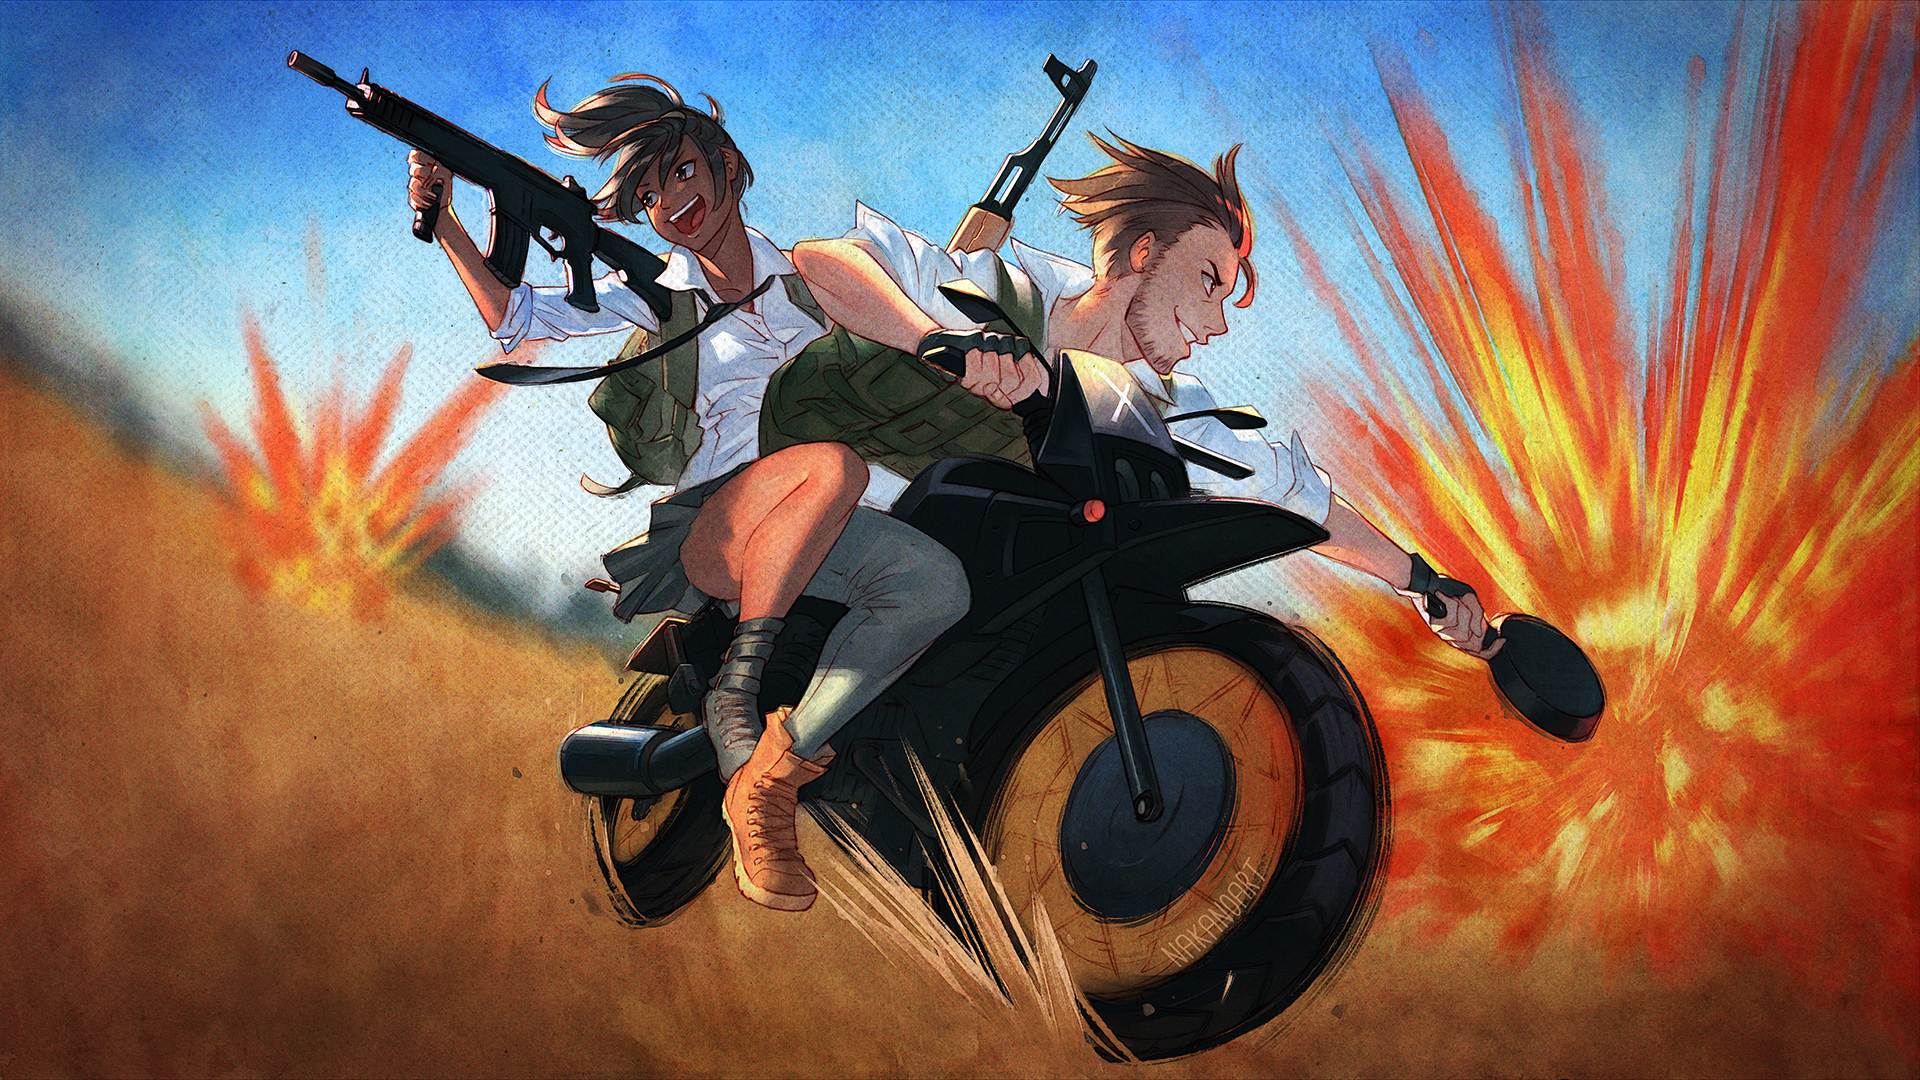 Download Pubg Mobile Wallpapers 720p 1080p 4k: 1920x1080 PlayerUnknowns Battlegrounds Artwork Laptop Full